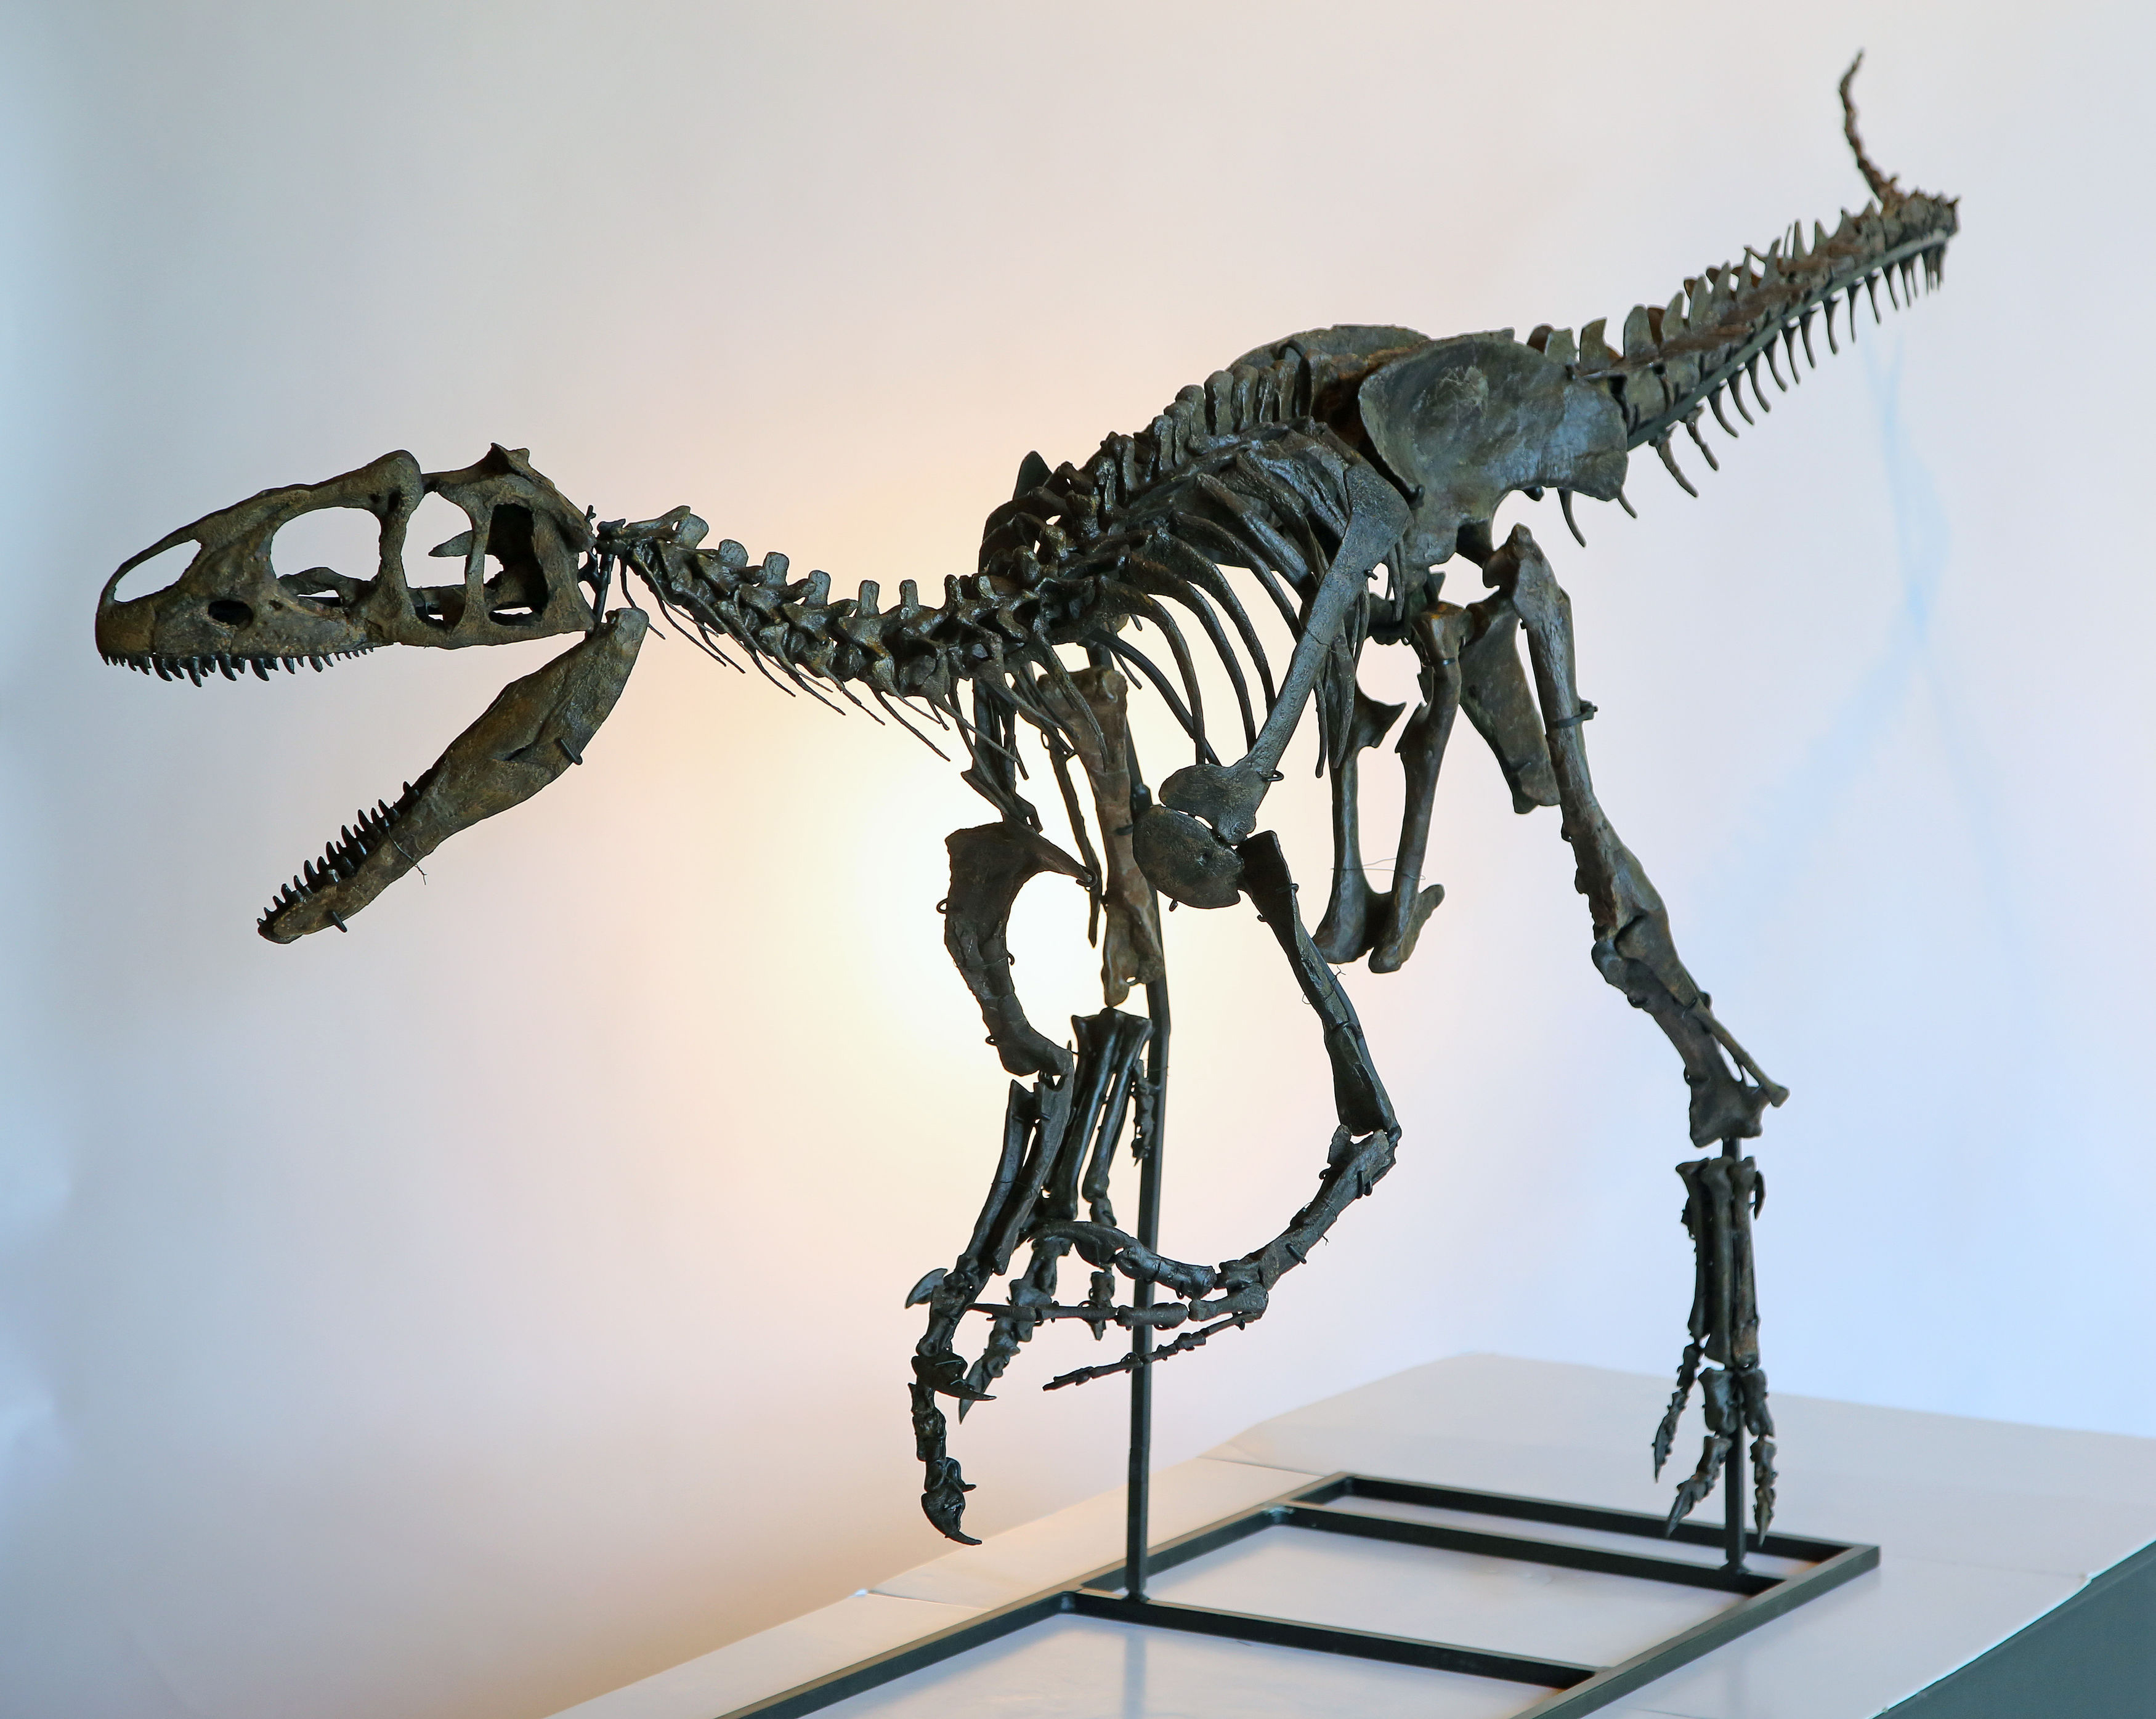 A rare skeleton of a juvenile Allosaurus dinosaur at Summers Place Auctions in West Sussex, England is set to fetch up to £500,000 at an auction in November.